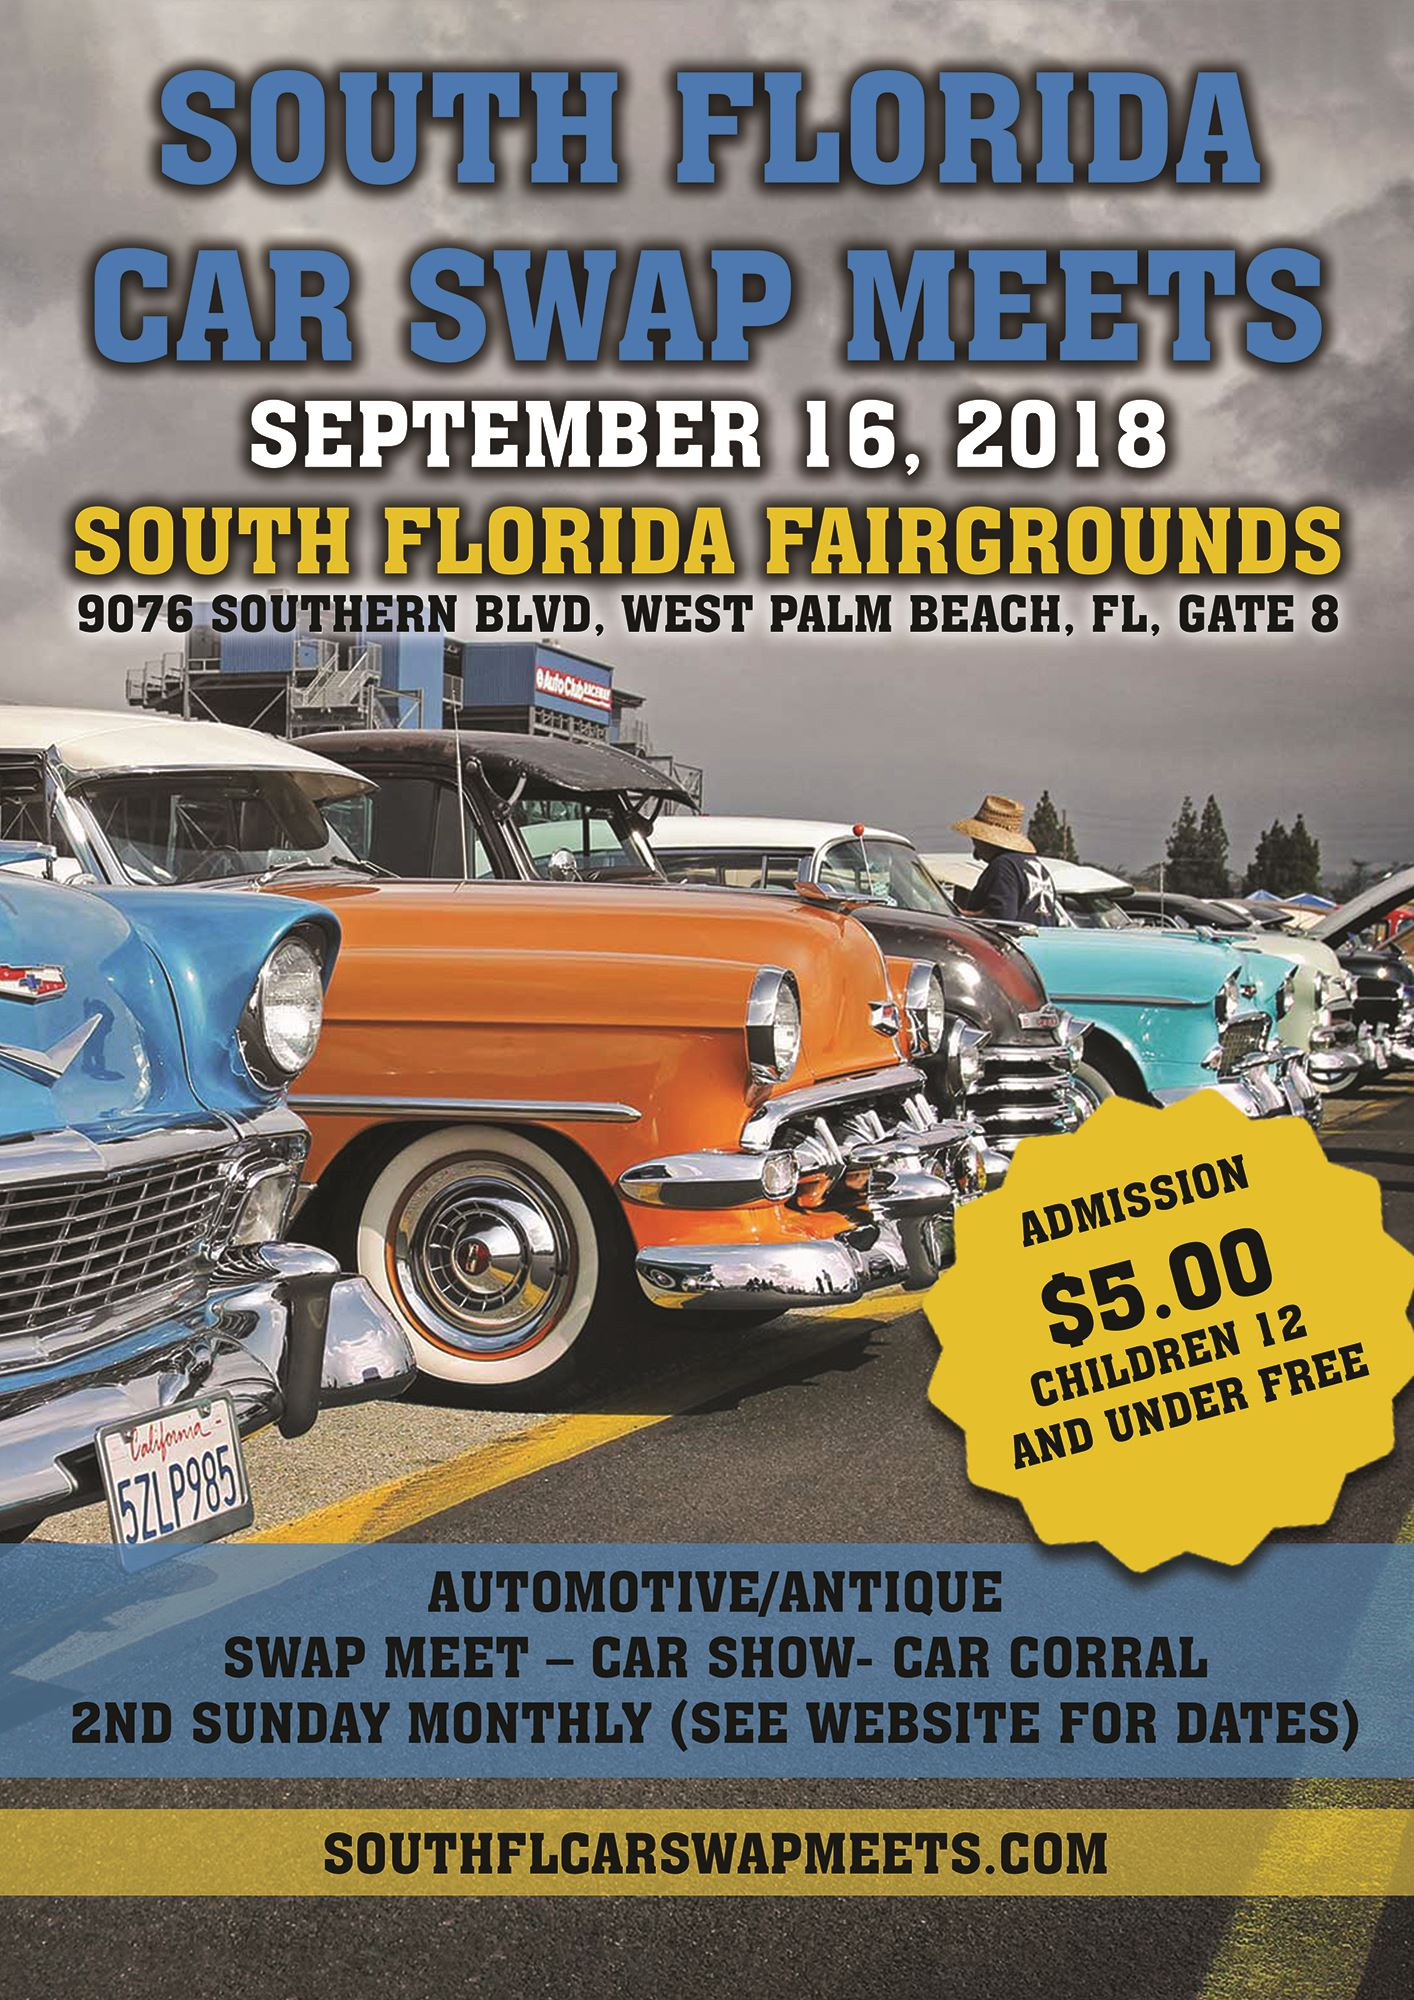 South Florida Car Swap Meet Car Show - Car show florida